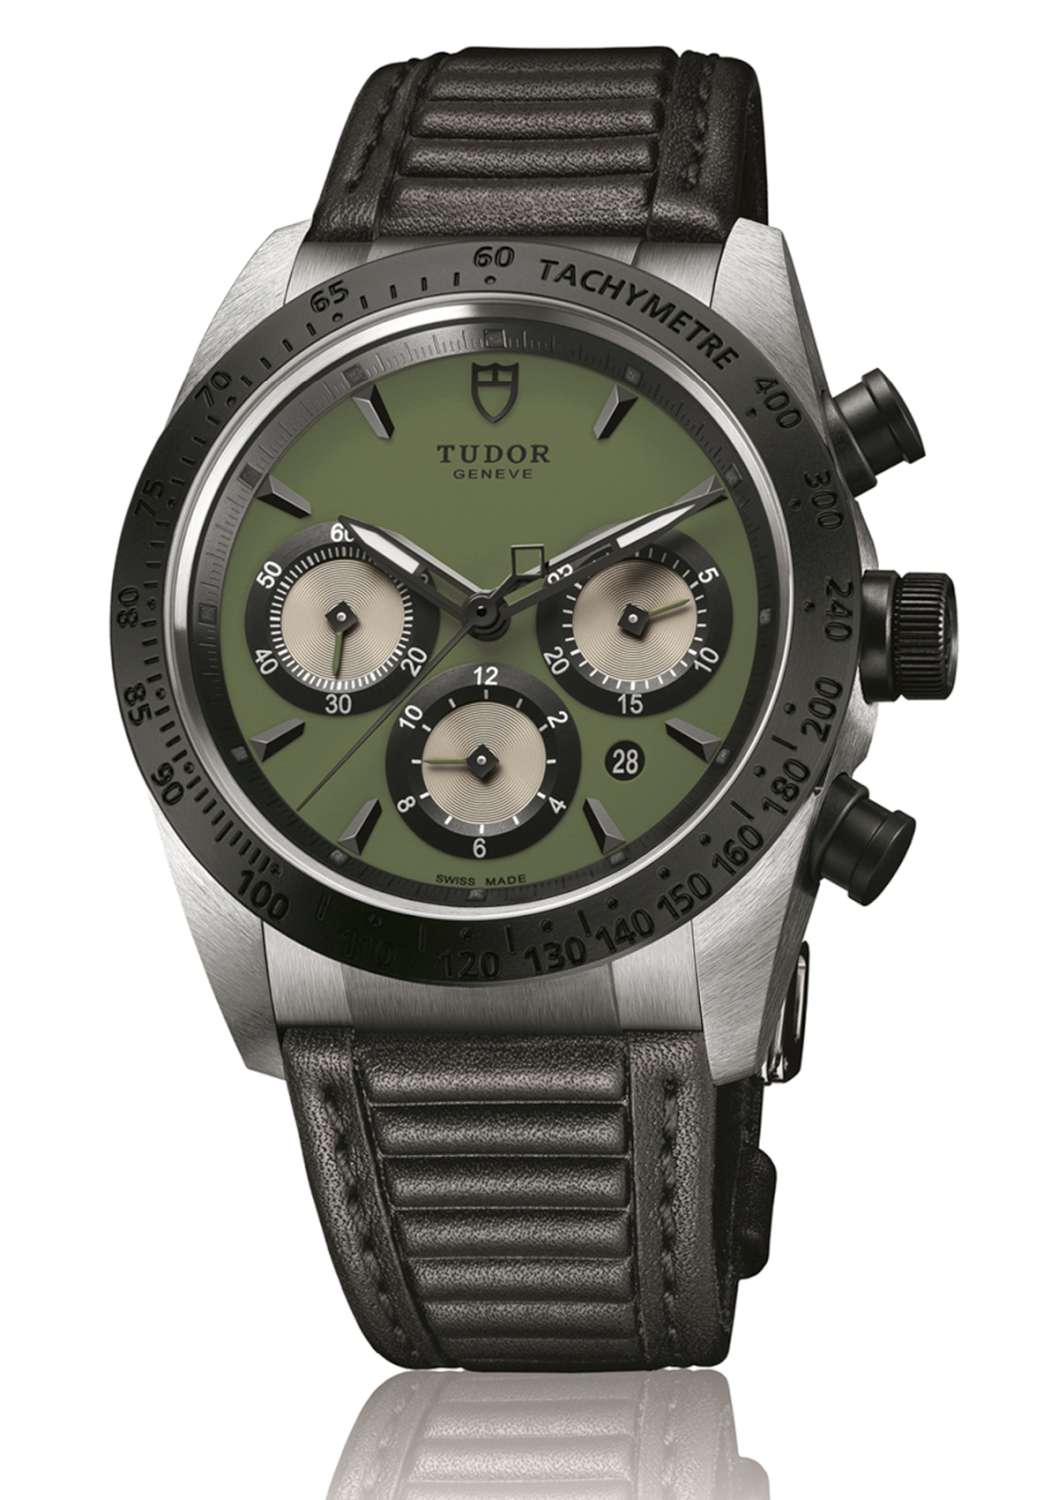 low_42010N TUDOR FASTRIDER CHRONOGRAPH GREEN-1500